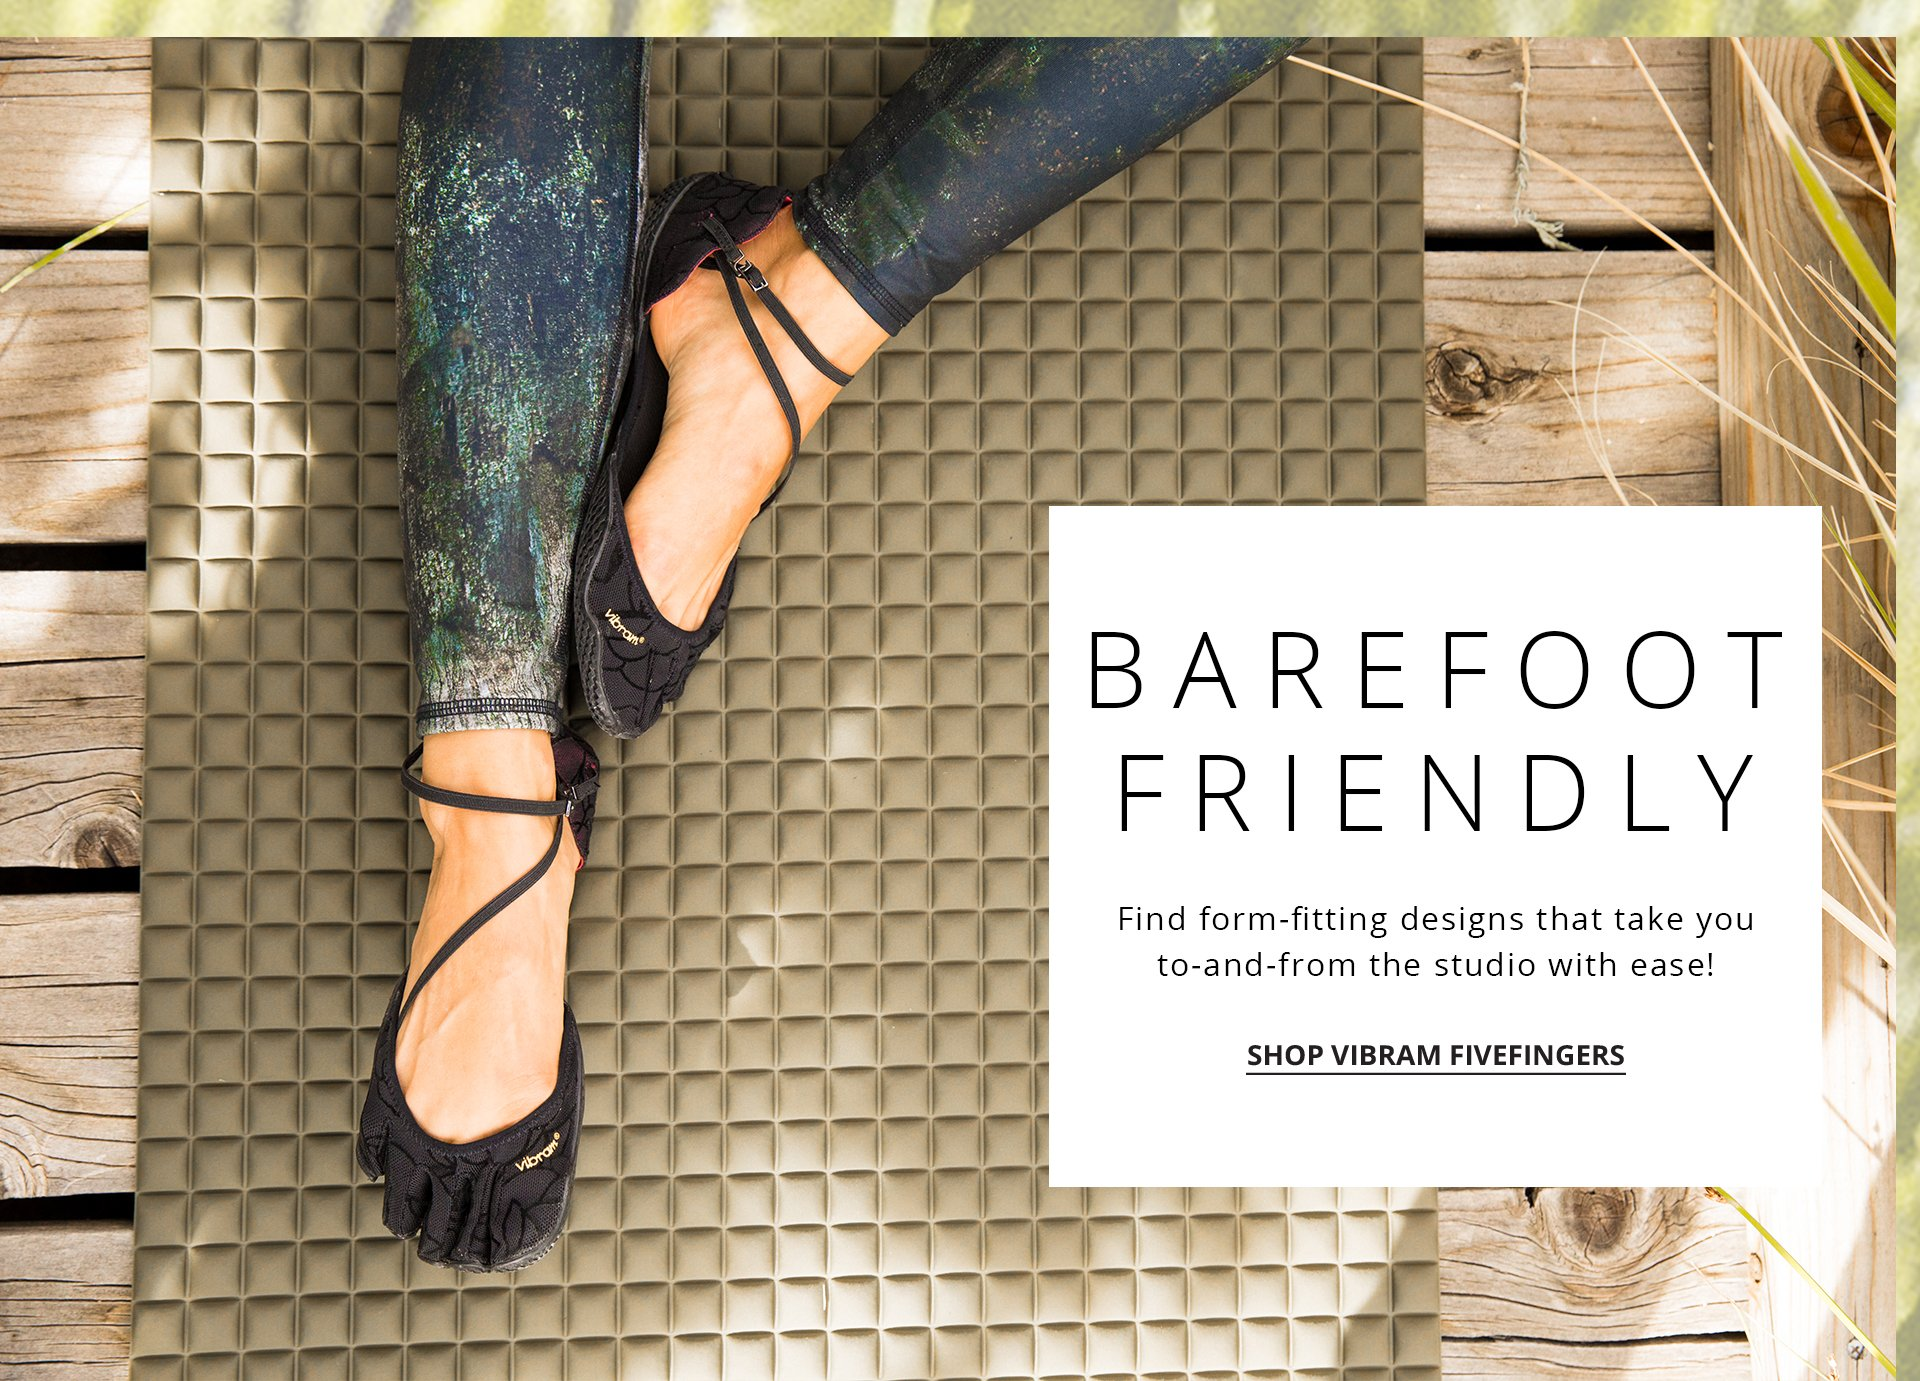 Barefoot Friendly. Find form-fitting designs that take you to-and-from the studio with ease.